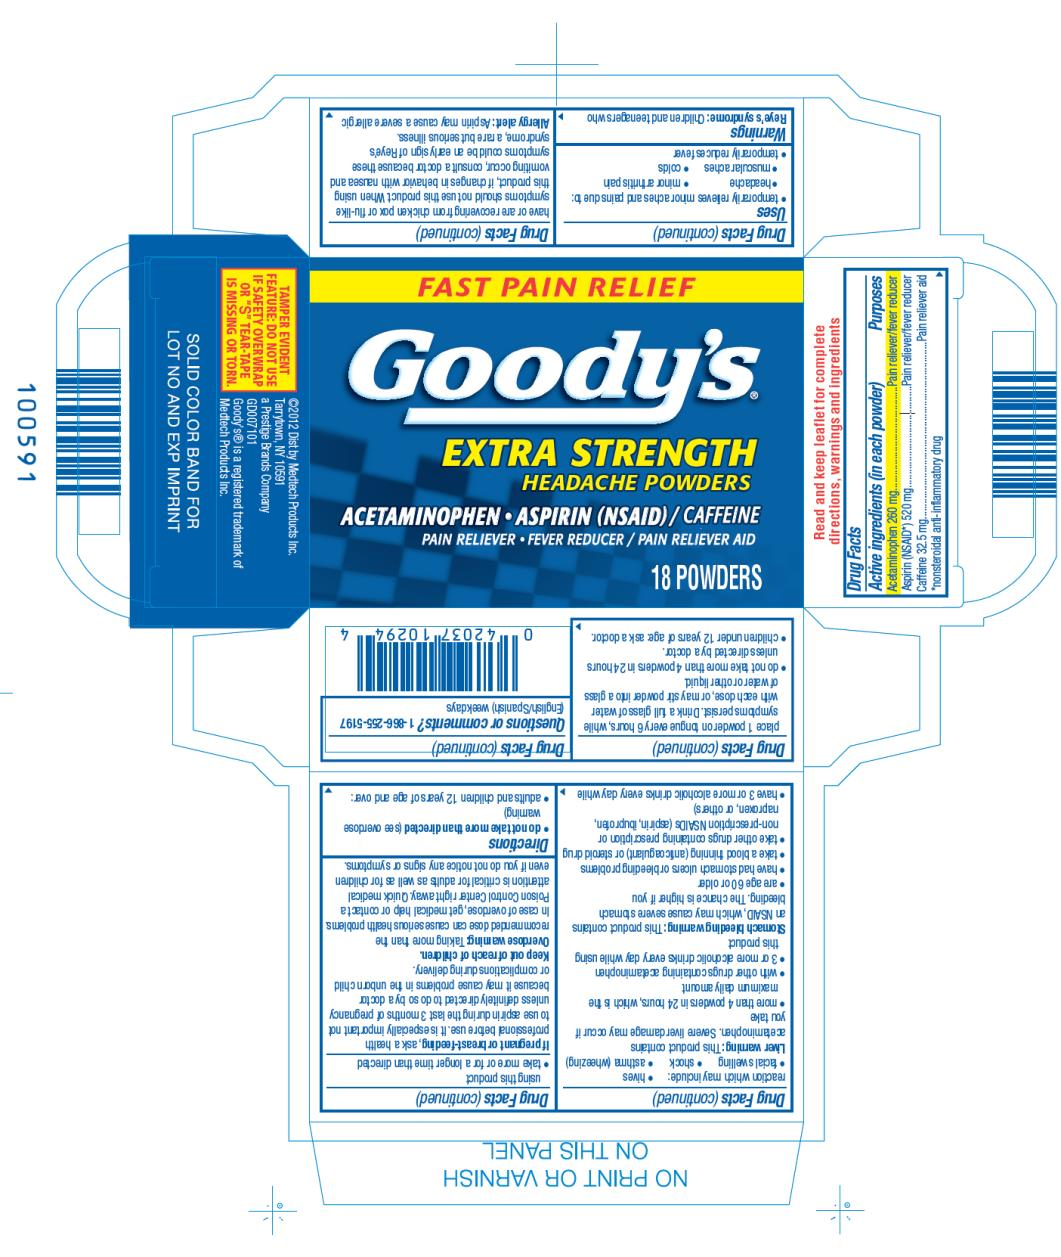 FAST PAIN RELIEF Goody's® EXTRA STRENGTH HEADACHE POWDERS ACETAMINOPHEN • ASPIRIN (NSAID) / CAFFEINE PAIN RELIEVER / PAIN RELIEVER AID 18 Powders